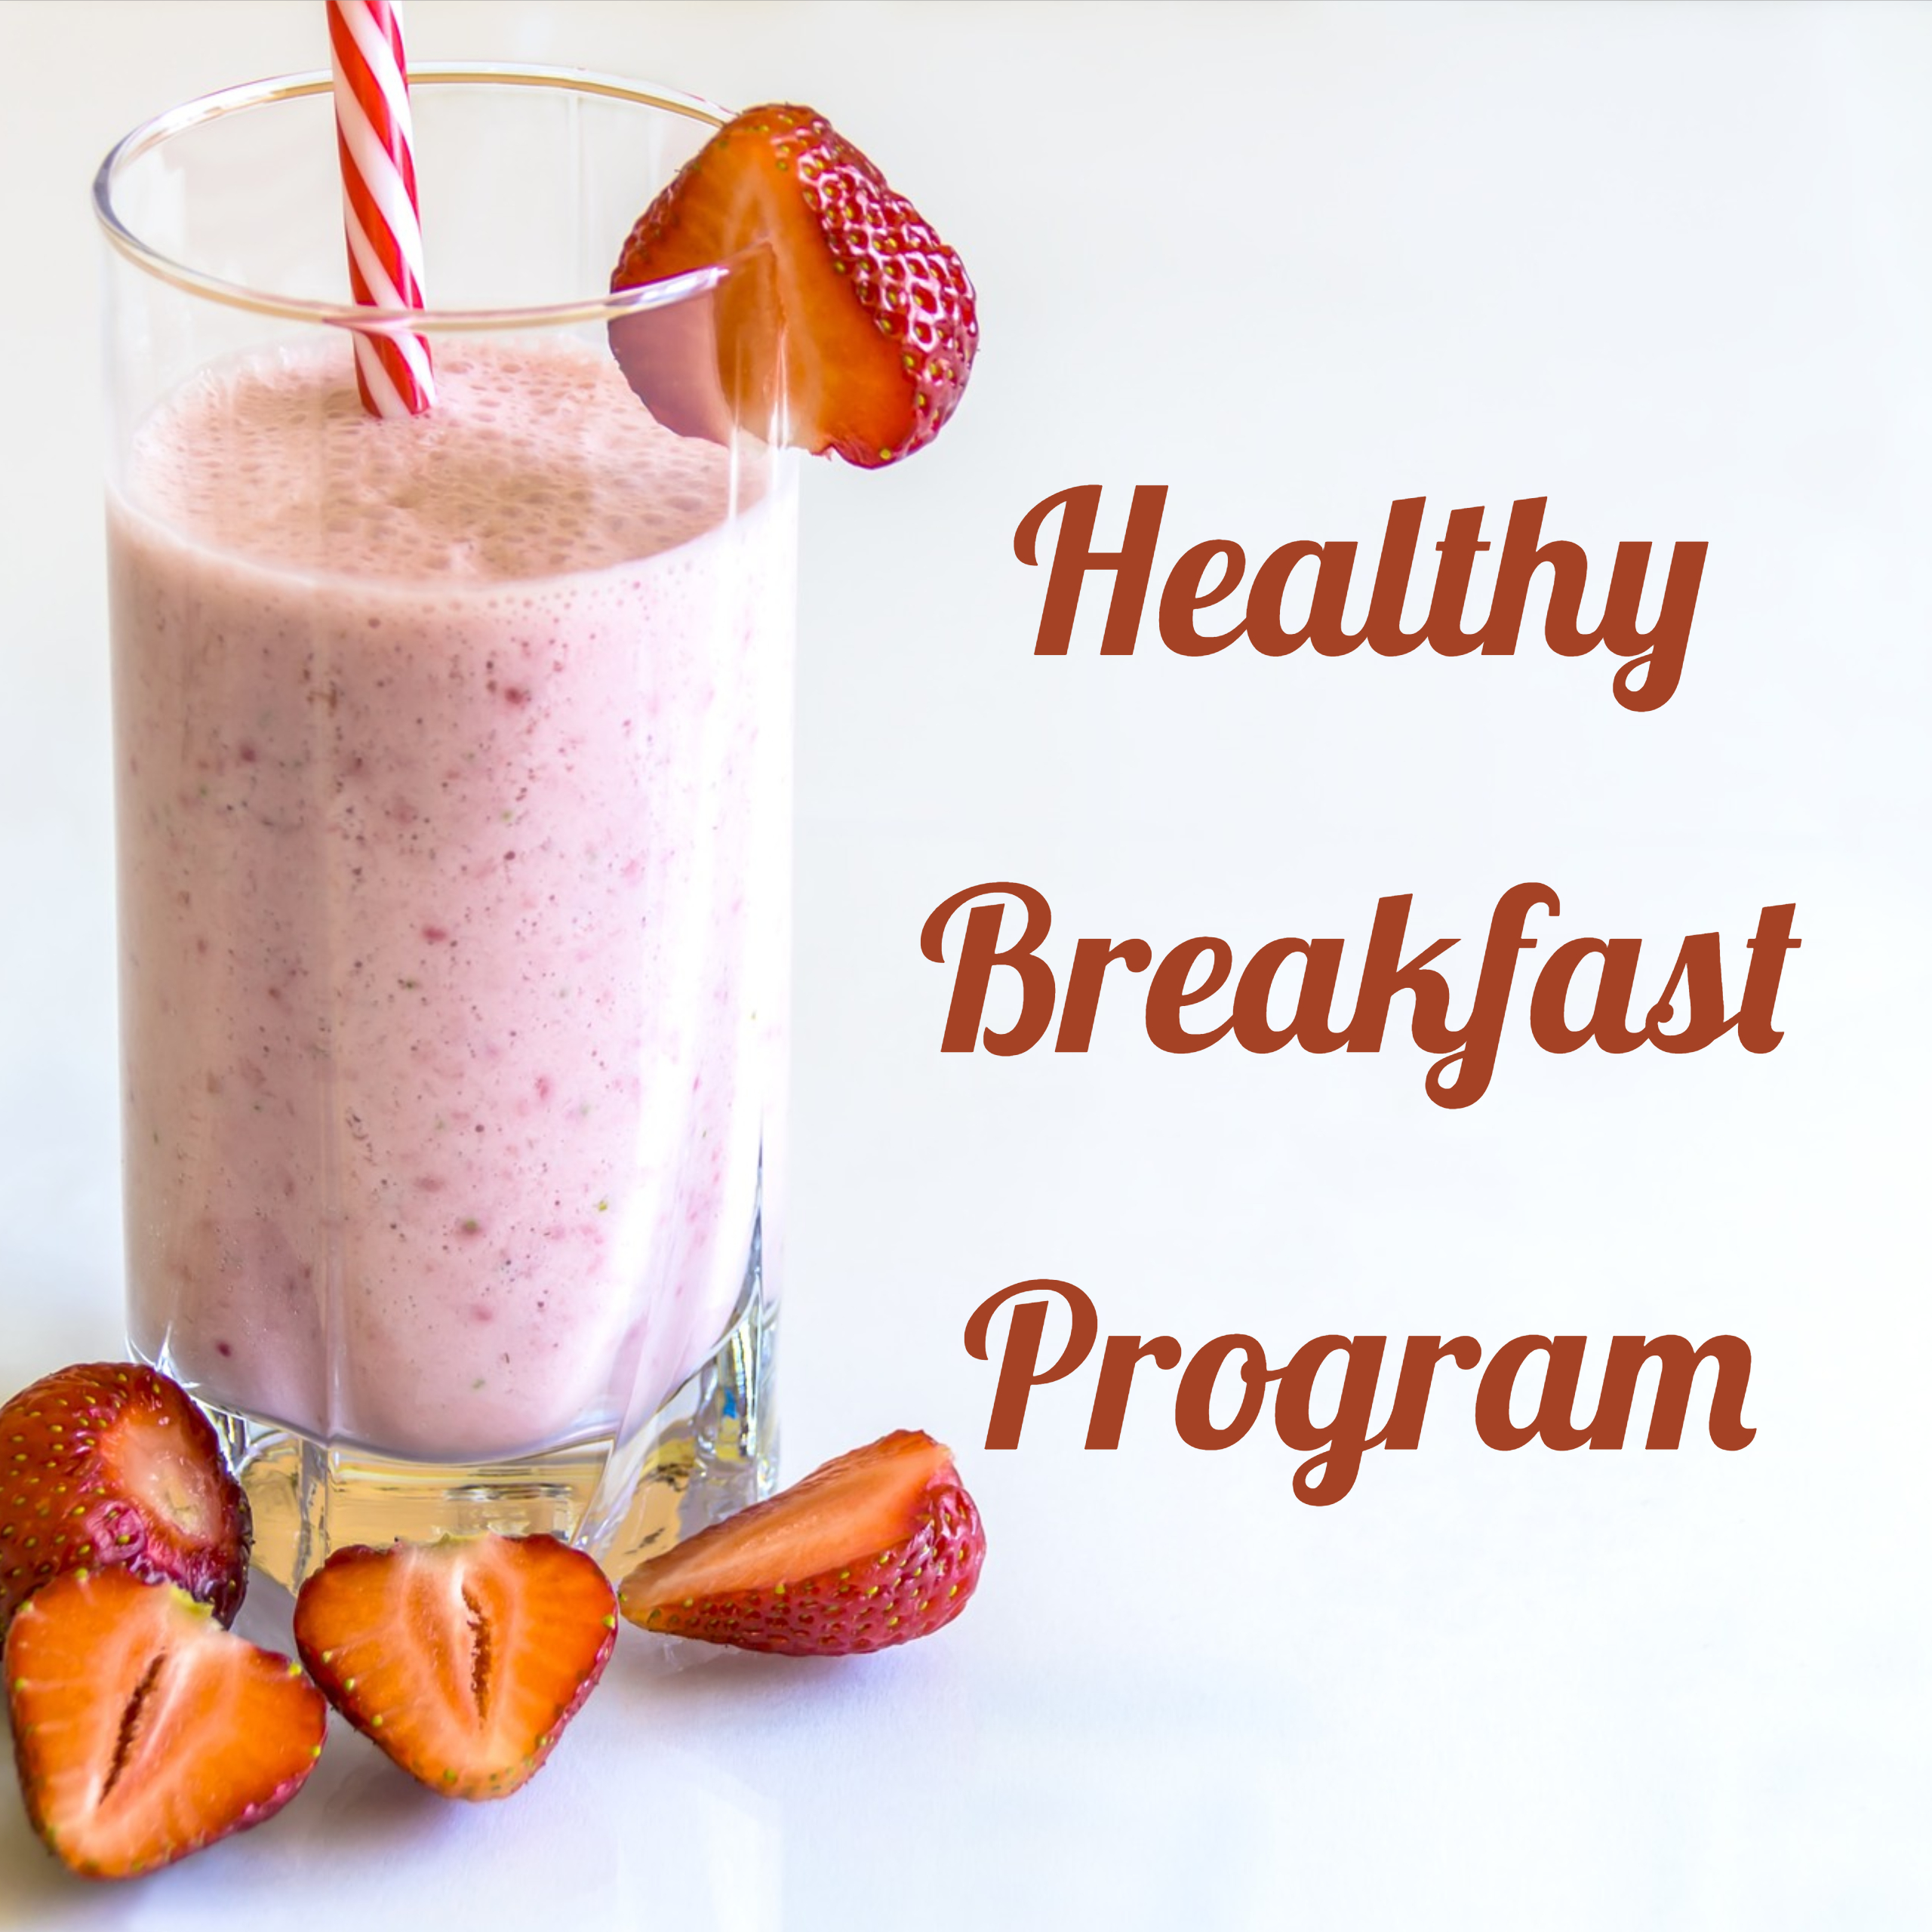 Healthy Breakfast Program